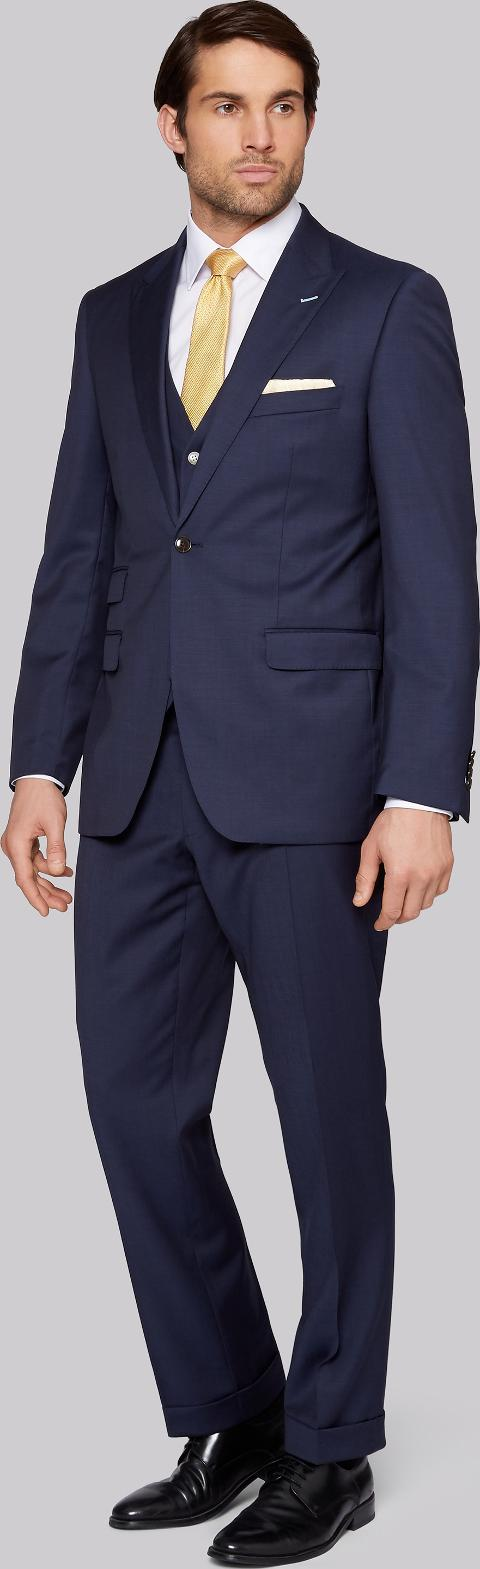 Ahh, THE Suit. It's a classic wardrobe staple, which has become just as much about fashion as function in recent years. This is where Moss Bros. nails it with a rich heritage specialising in formal menswear since , it has constantly evolved over the years to become the brand it is today.